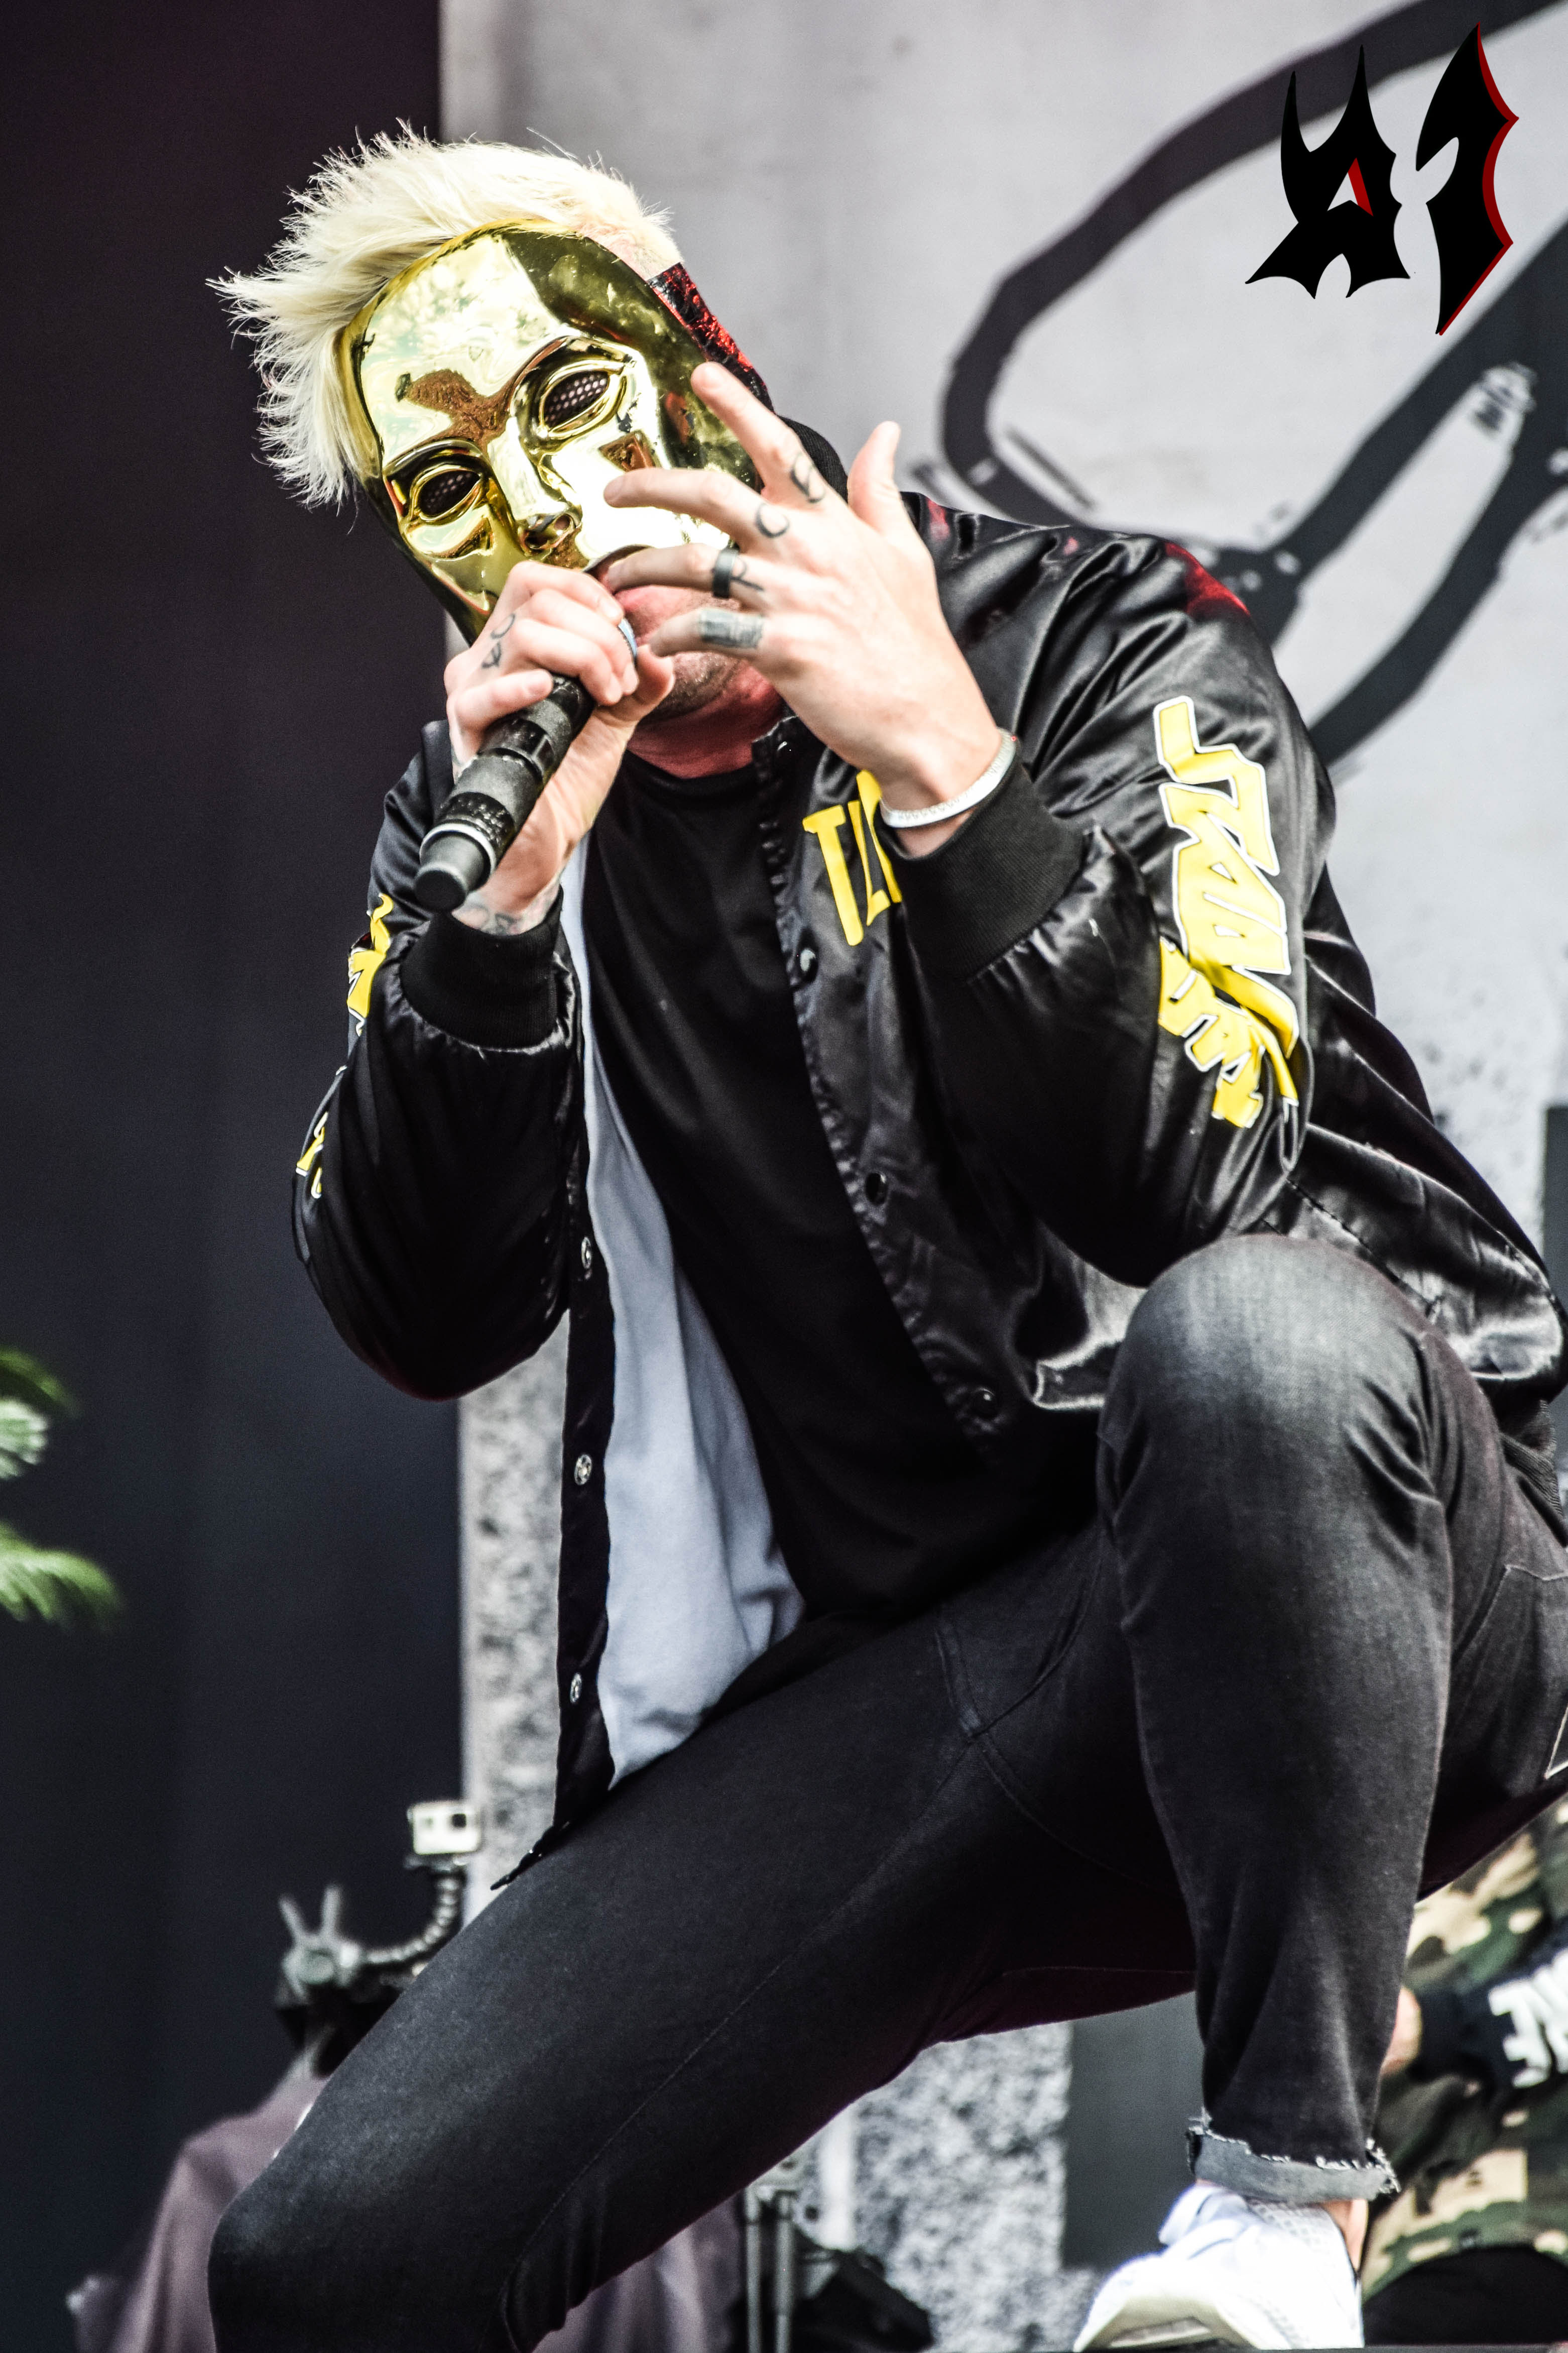 Donwload 2018 – Day 2 - Hollywood Undead 20